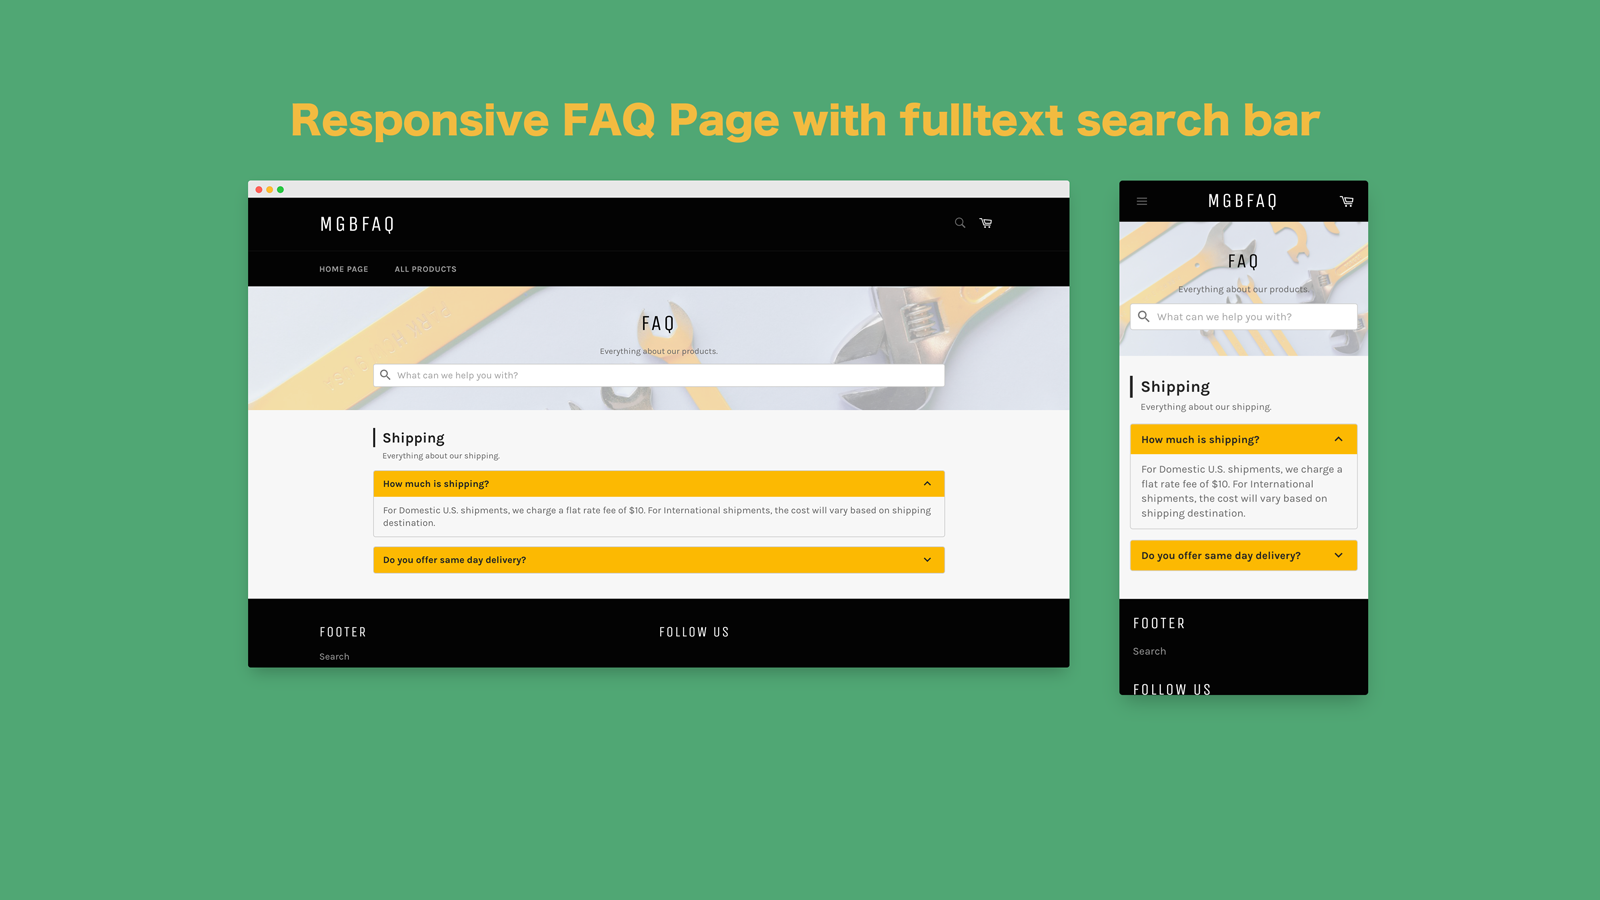 Responsive FAQ Page with fast fulltext search bar